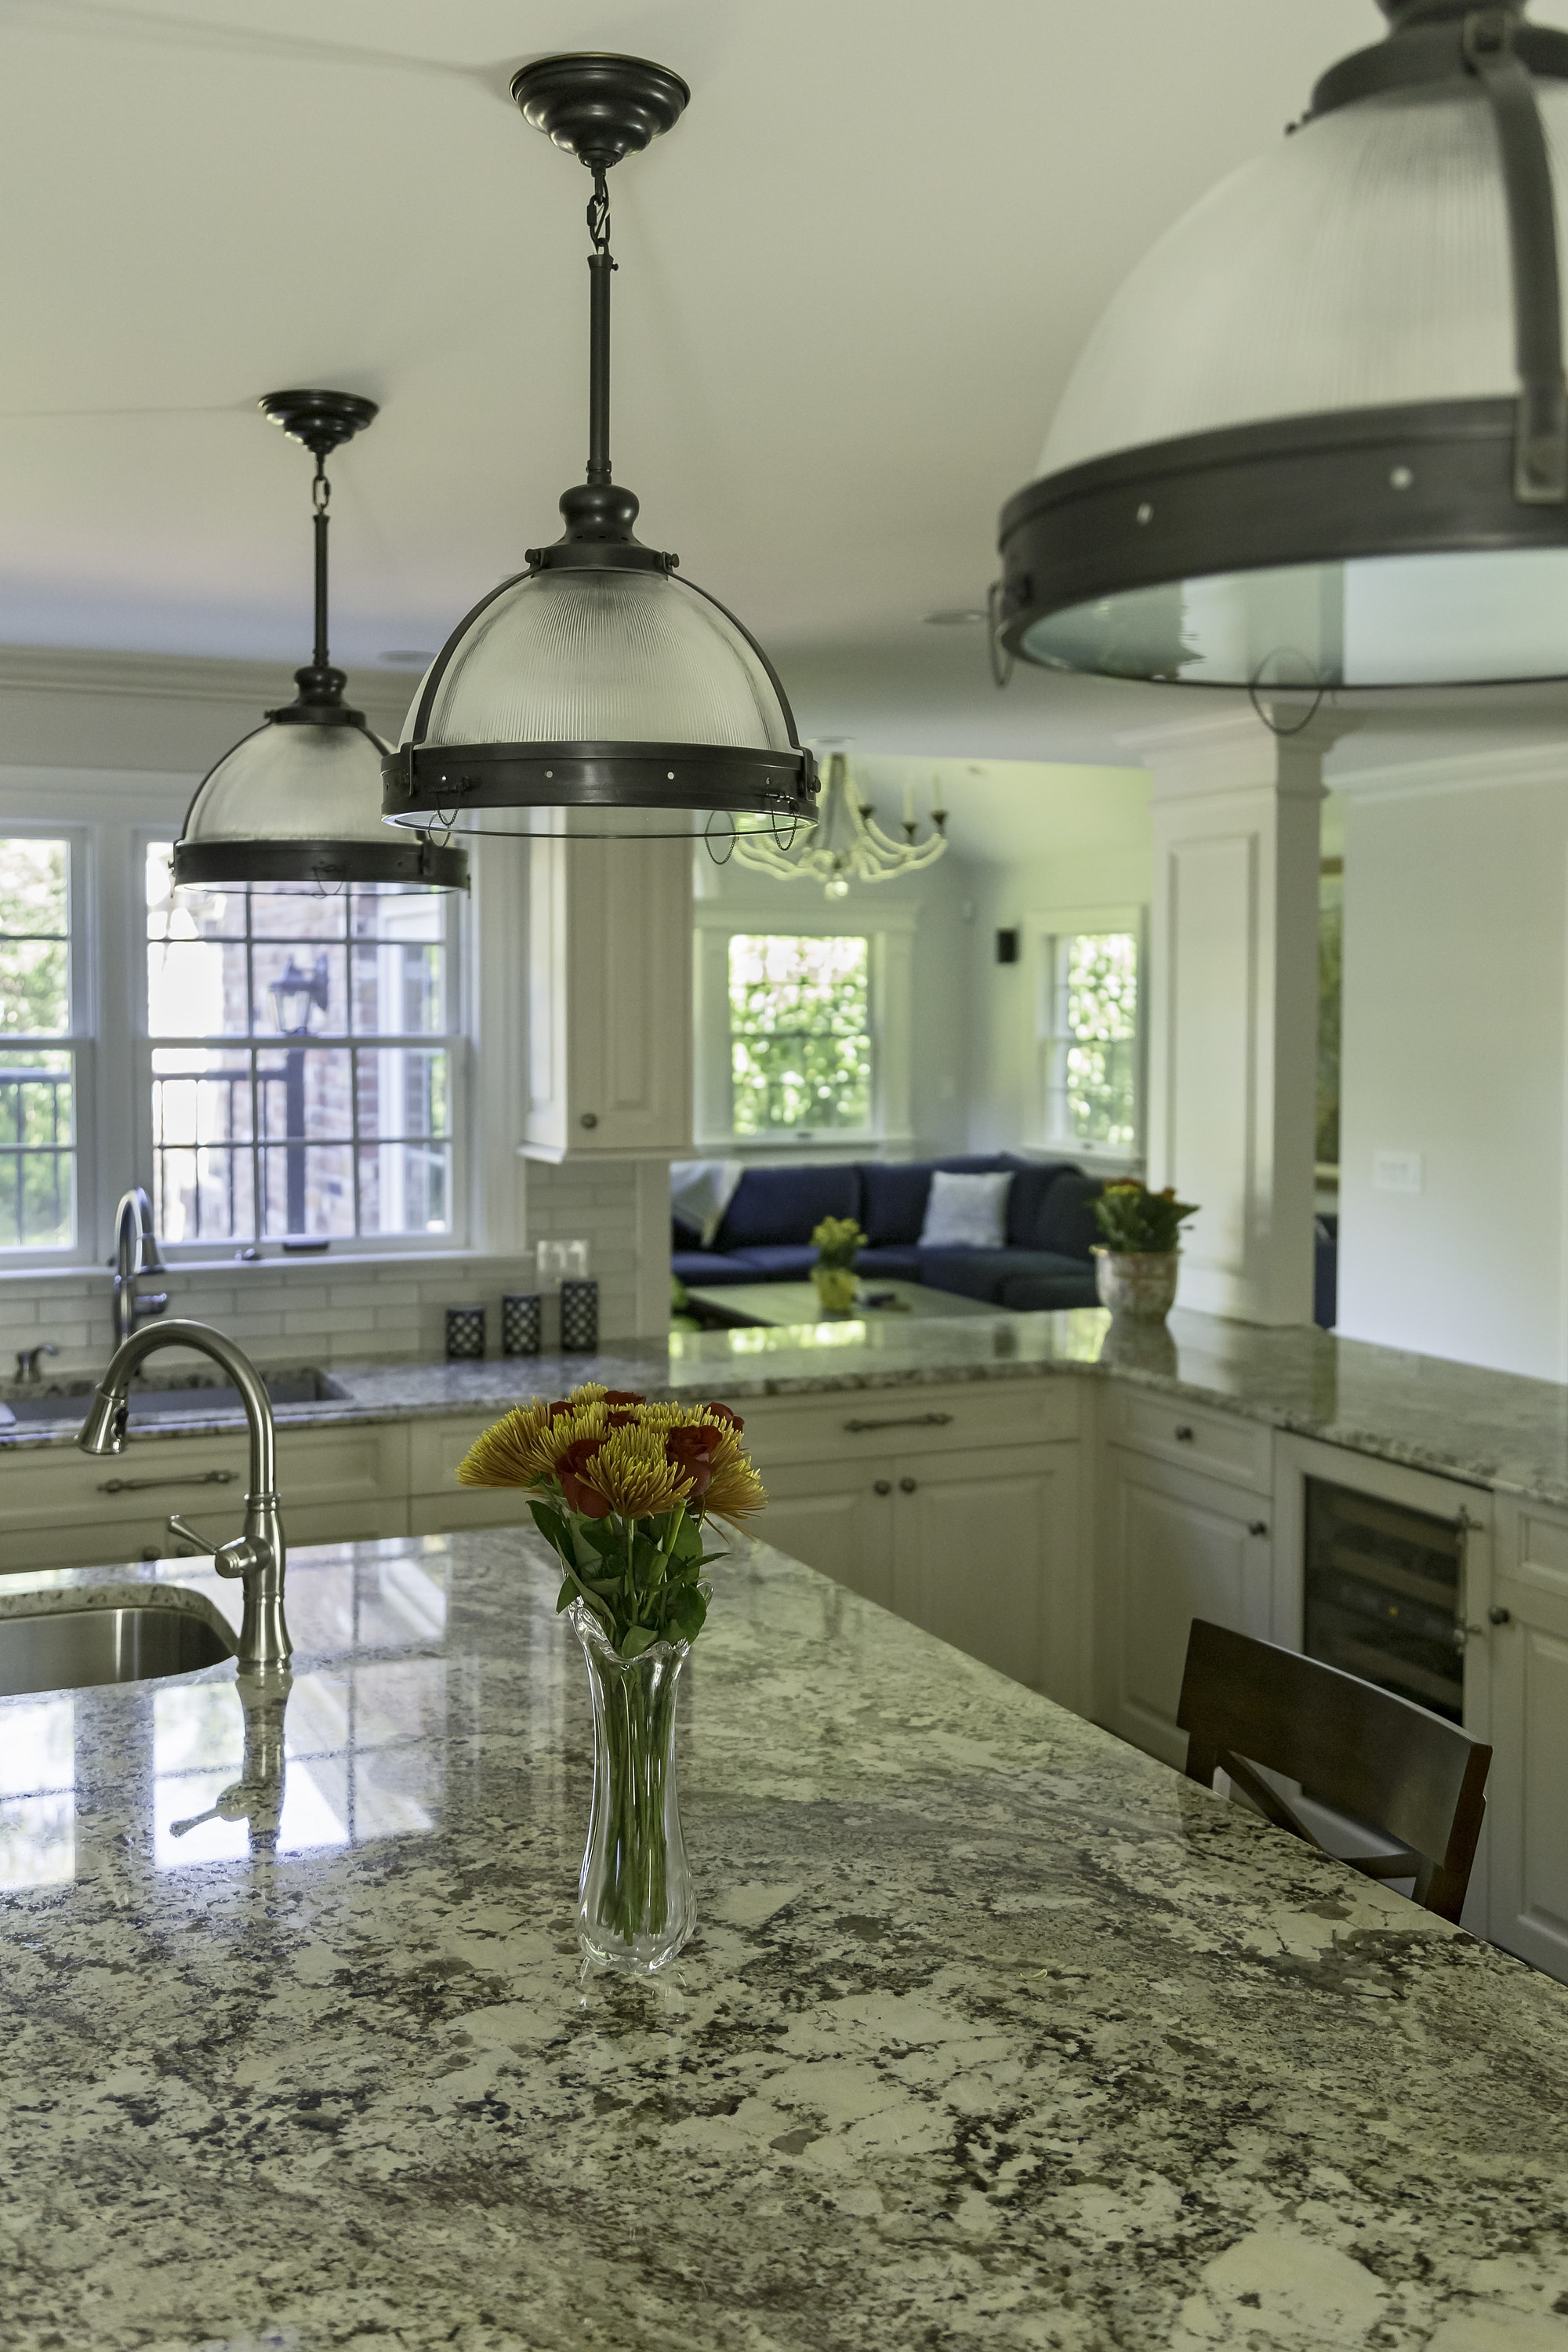 Traditional style kitchen with marble countertops